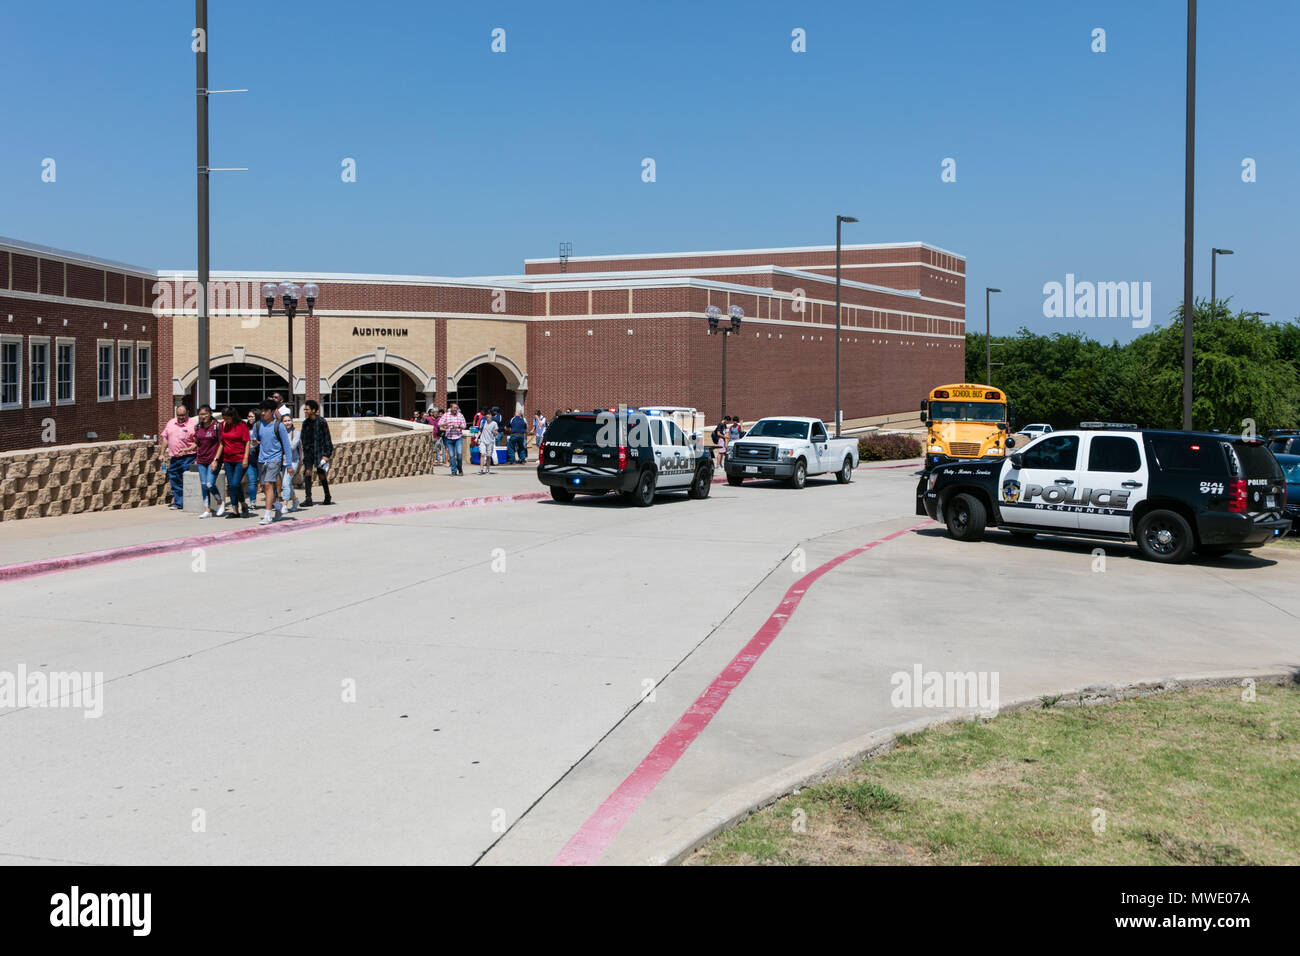 Dallas, USA. 1st June, 2018. Police cars arrive at the McKinney North High school, about 60 km north of Dallas, Texas, the United States, on June 1, 2018. Local officials confirmed Friday that a high school student died from a self-inflicted gunshot wound in McKinney North High School. Credit: Tian Dan/Xinhua/Alamy Live News Stock Photo